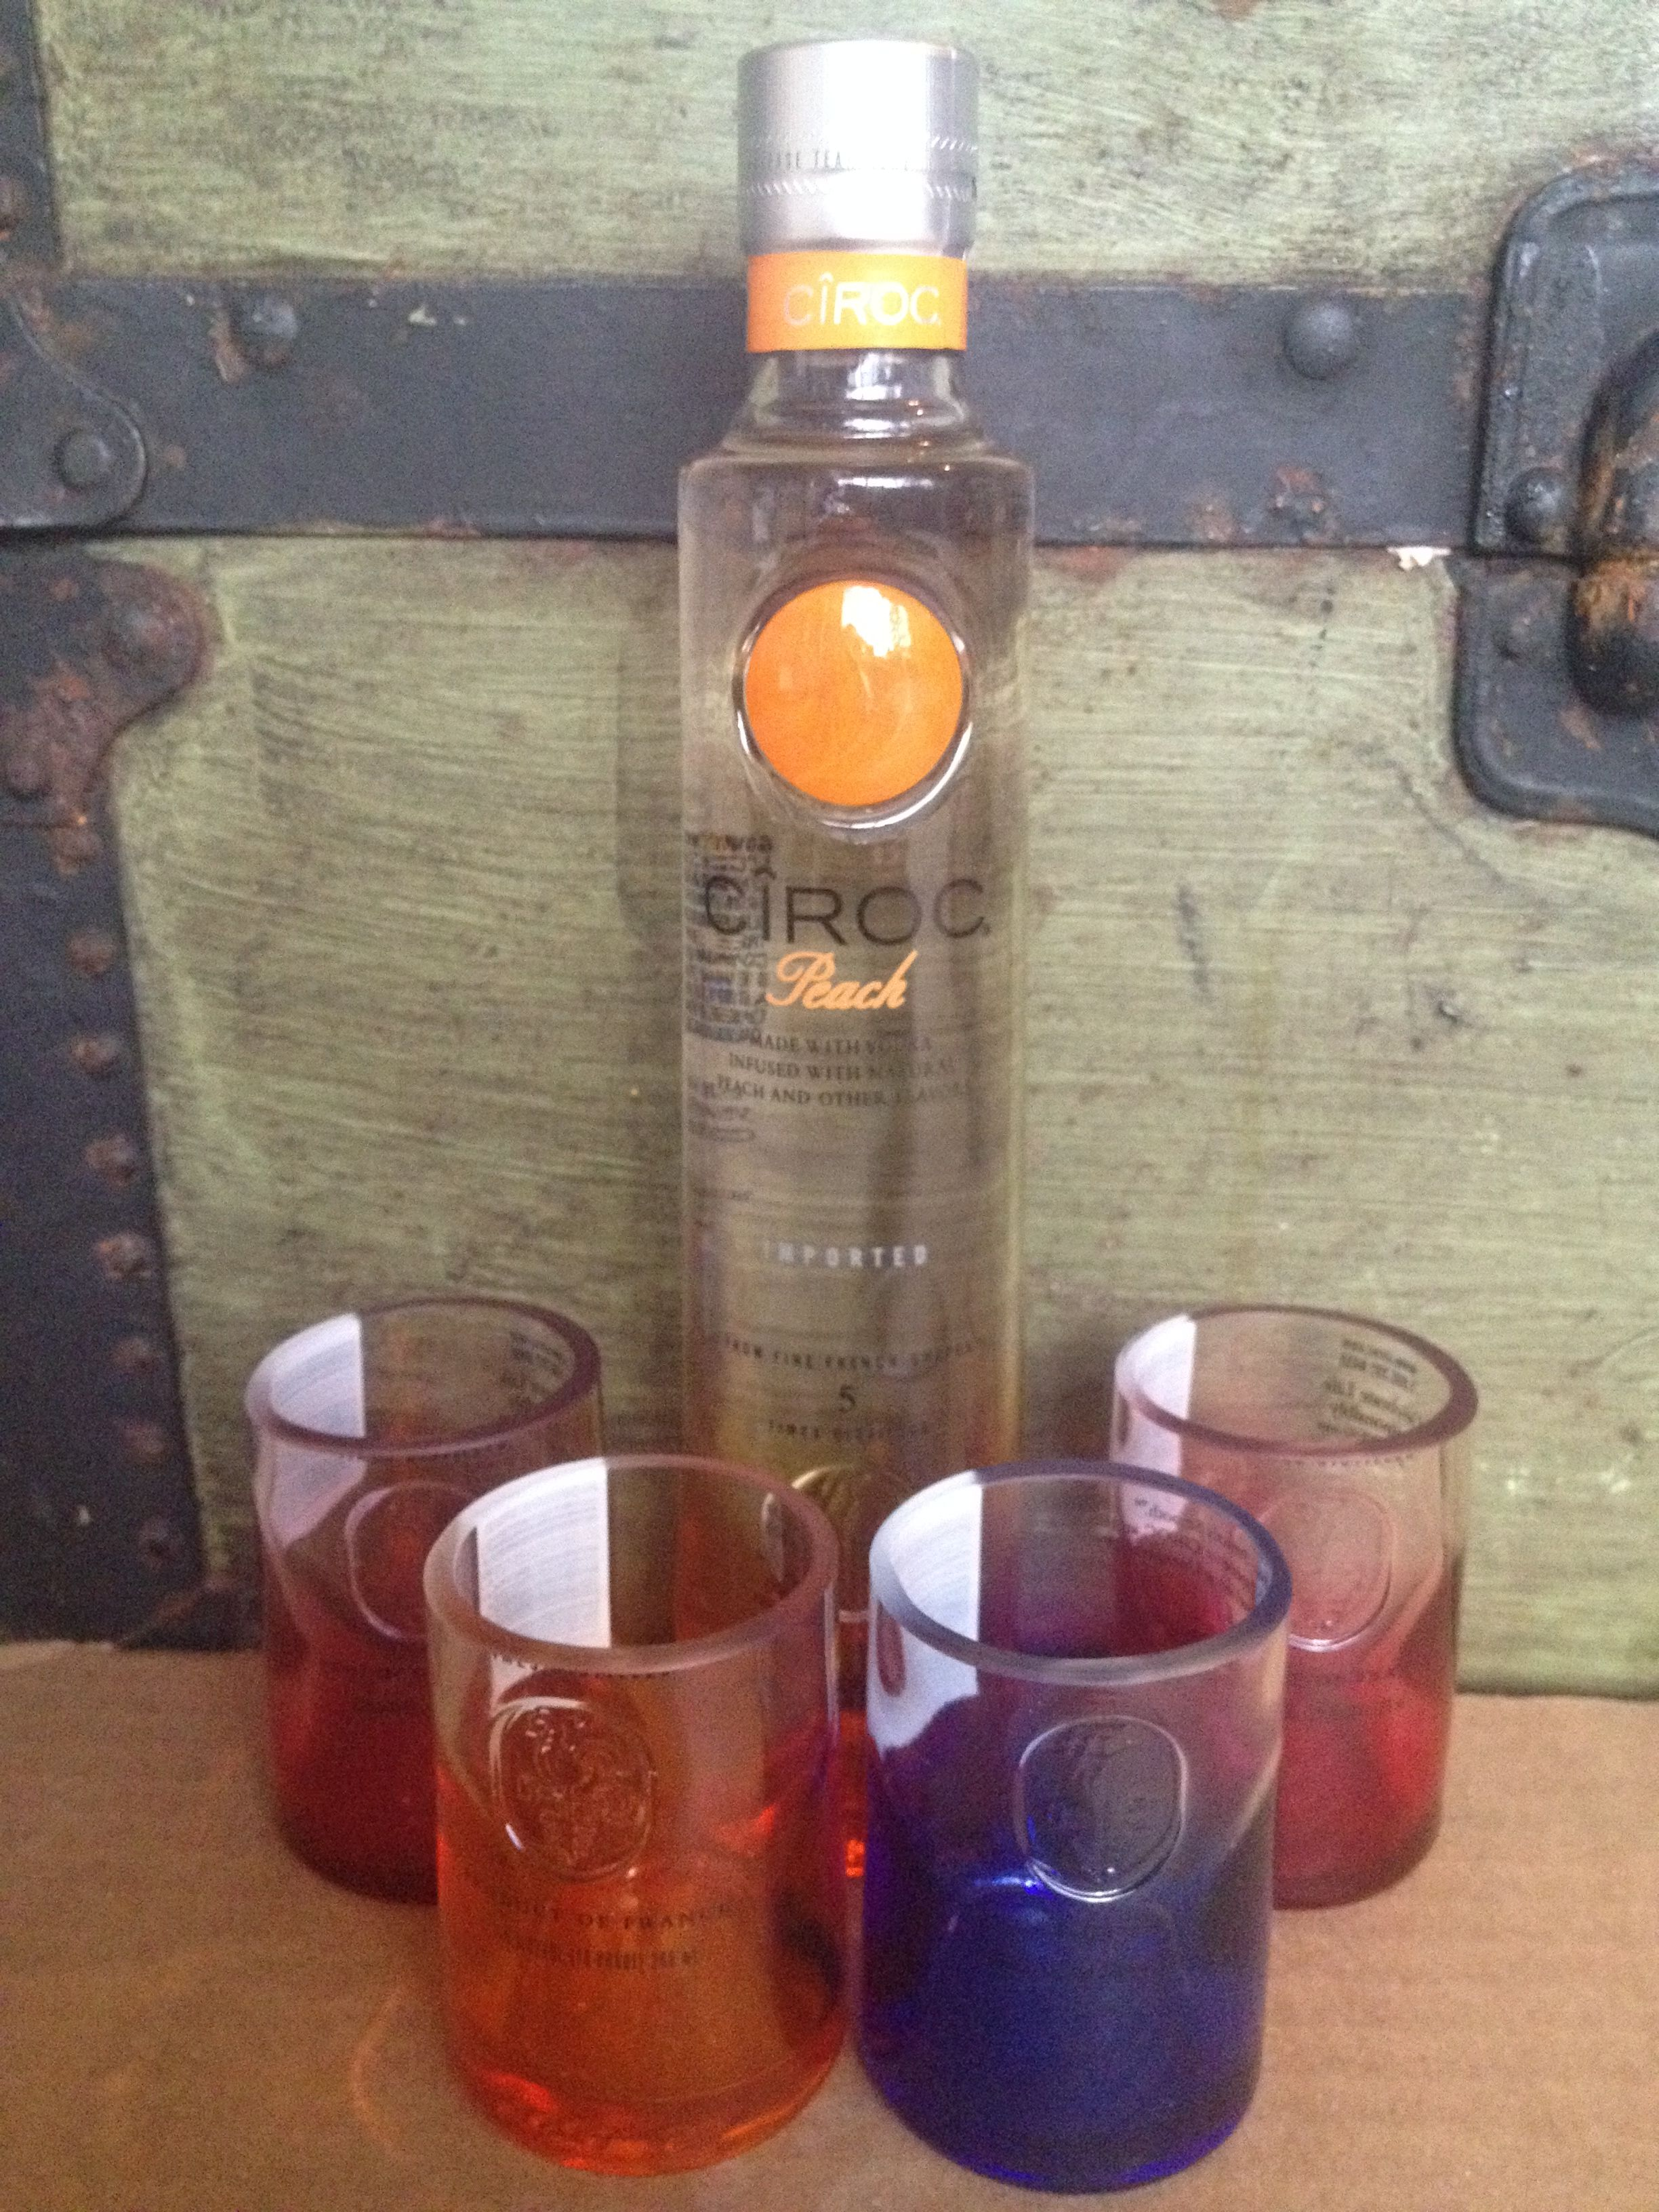 Ciroc shot glasses made from empty bottles in Little Rock AR